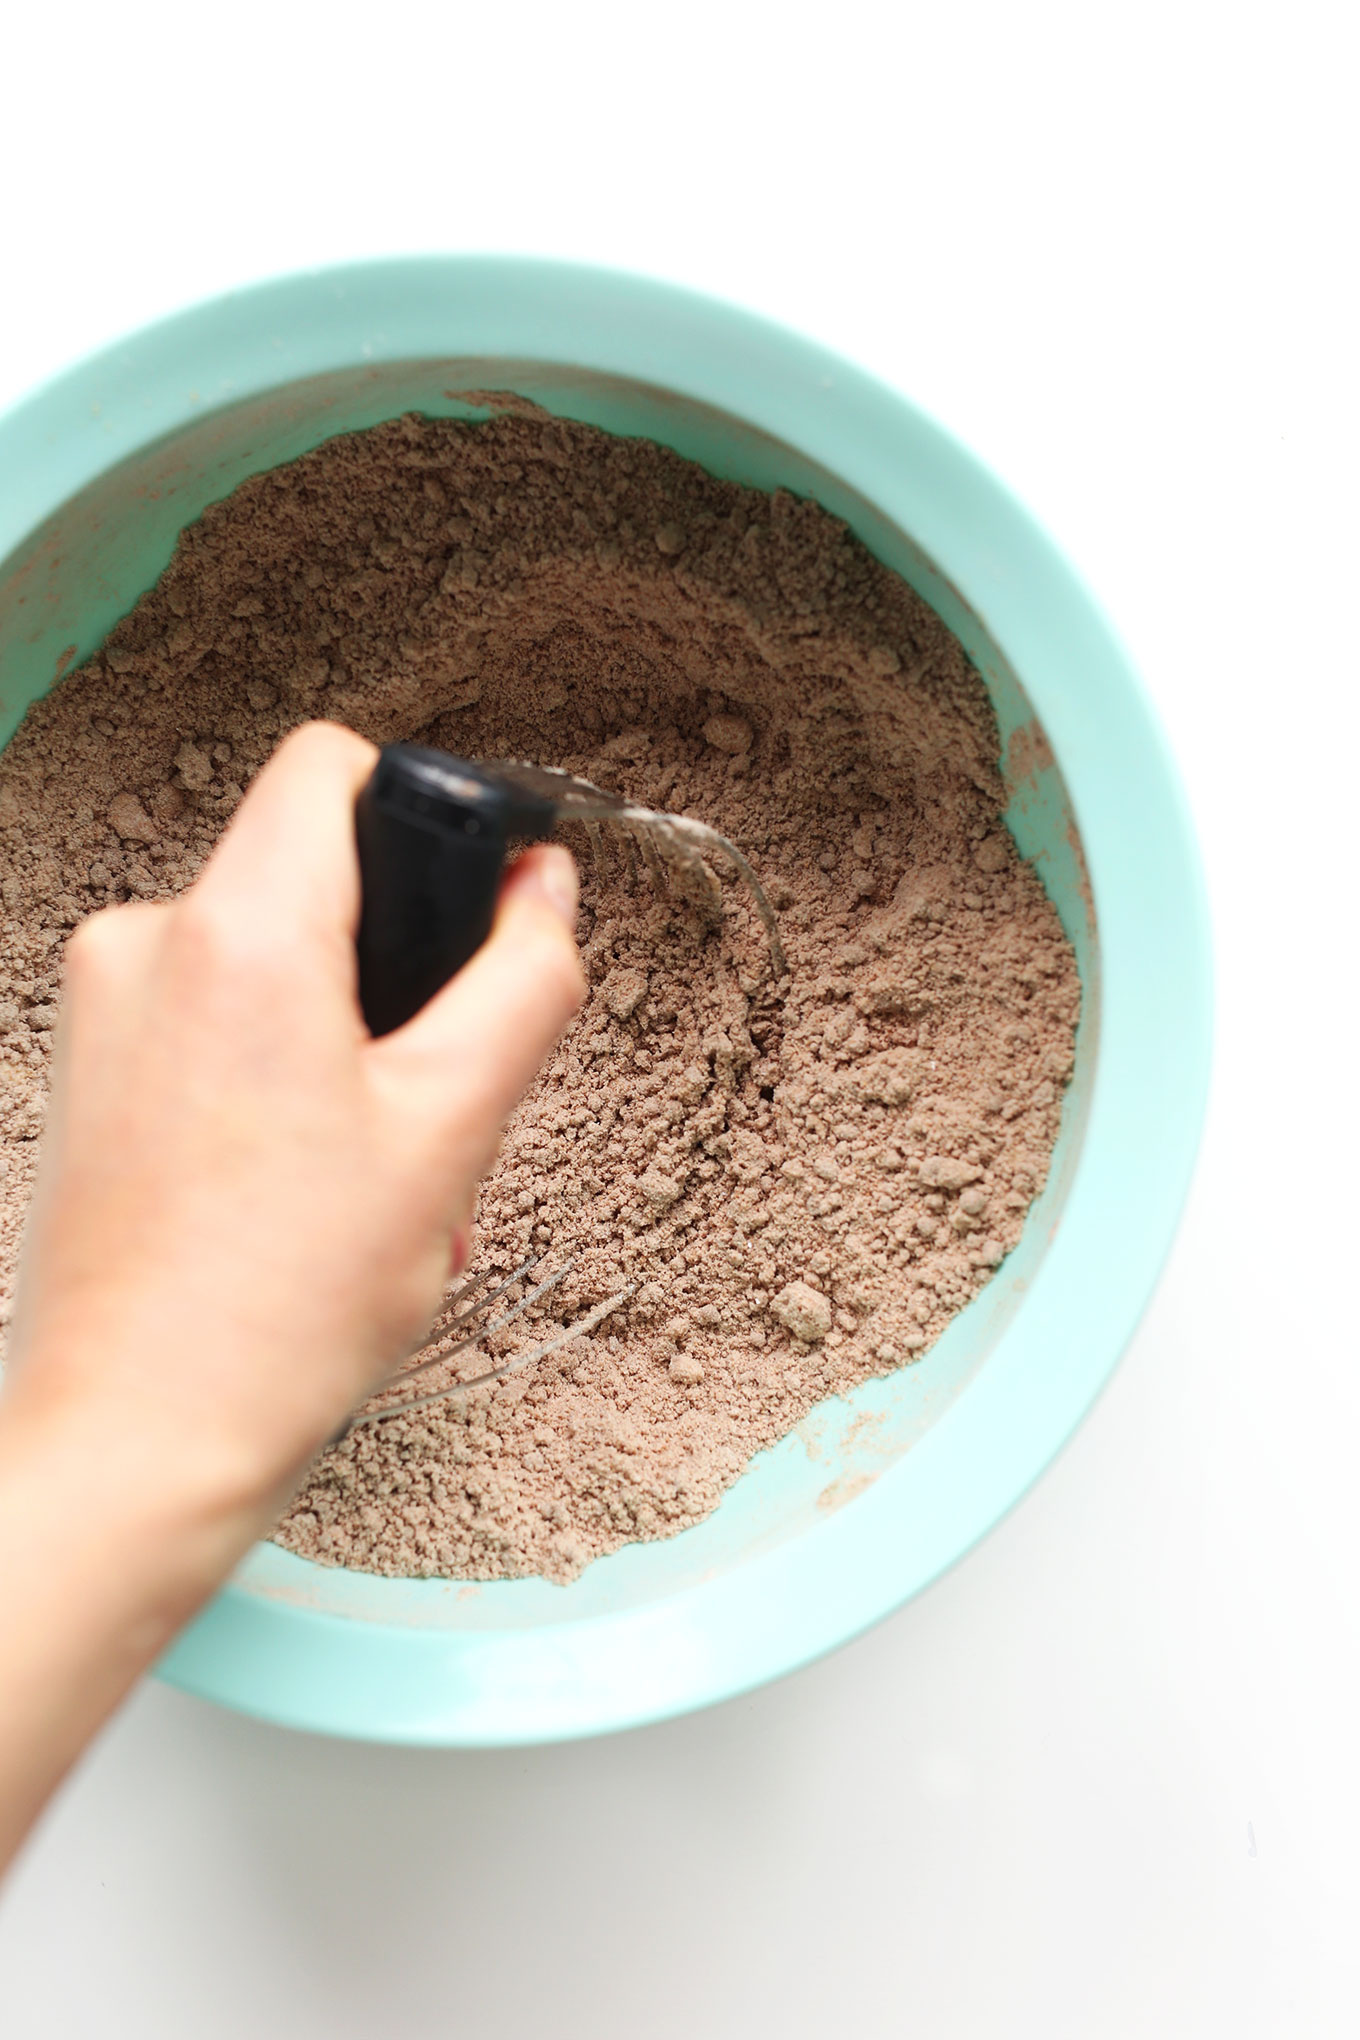 Using a pastry cutter to cut coconut oil into dry ingredients